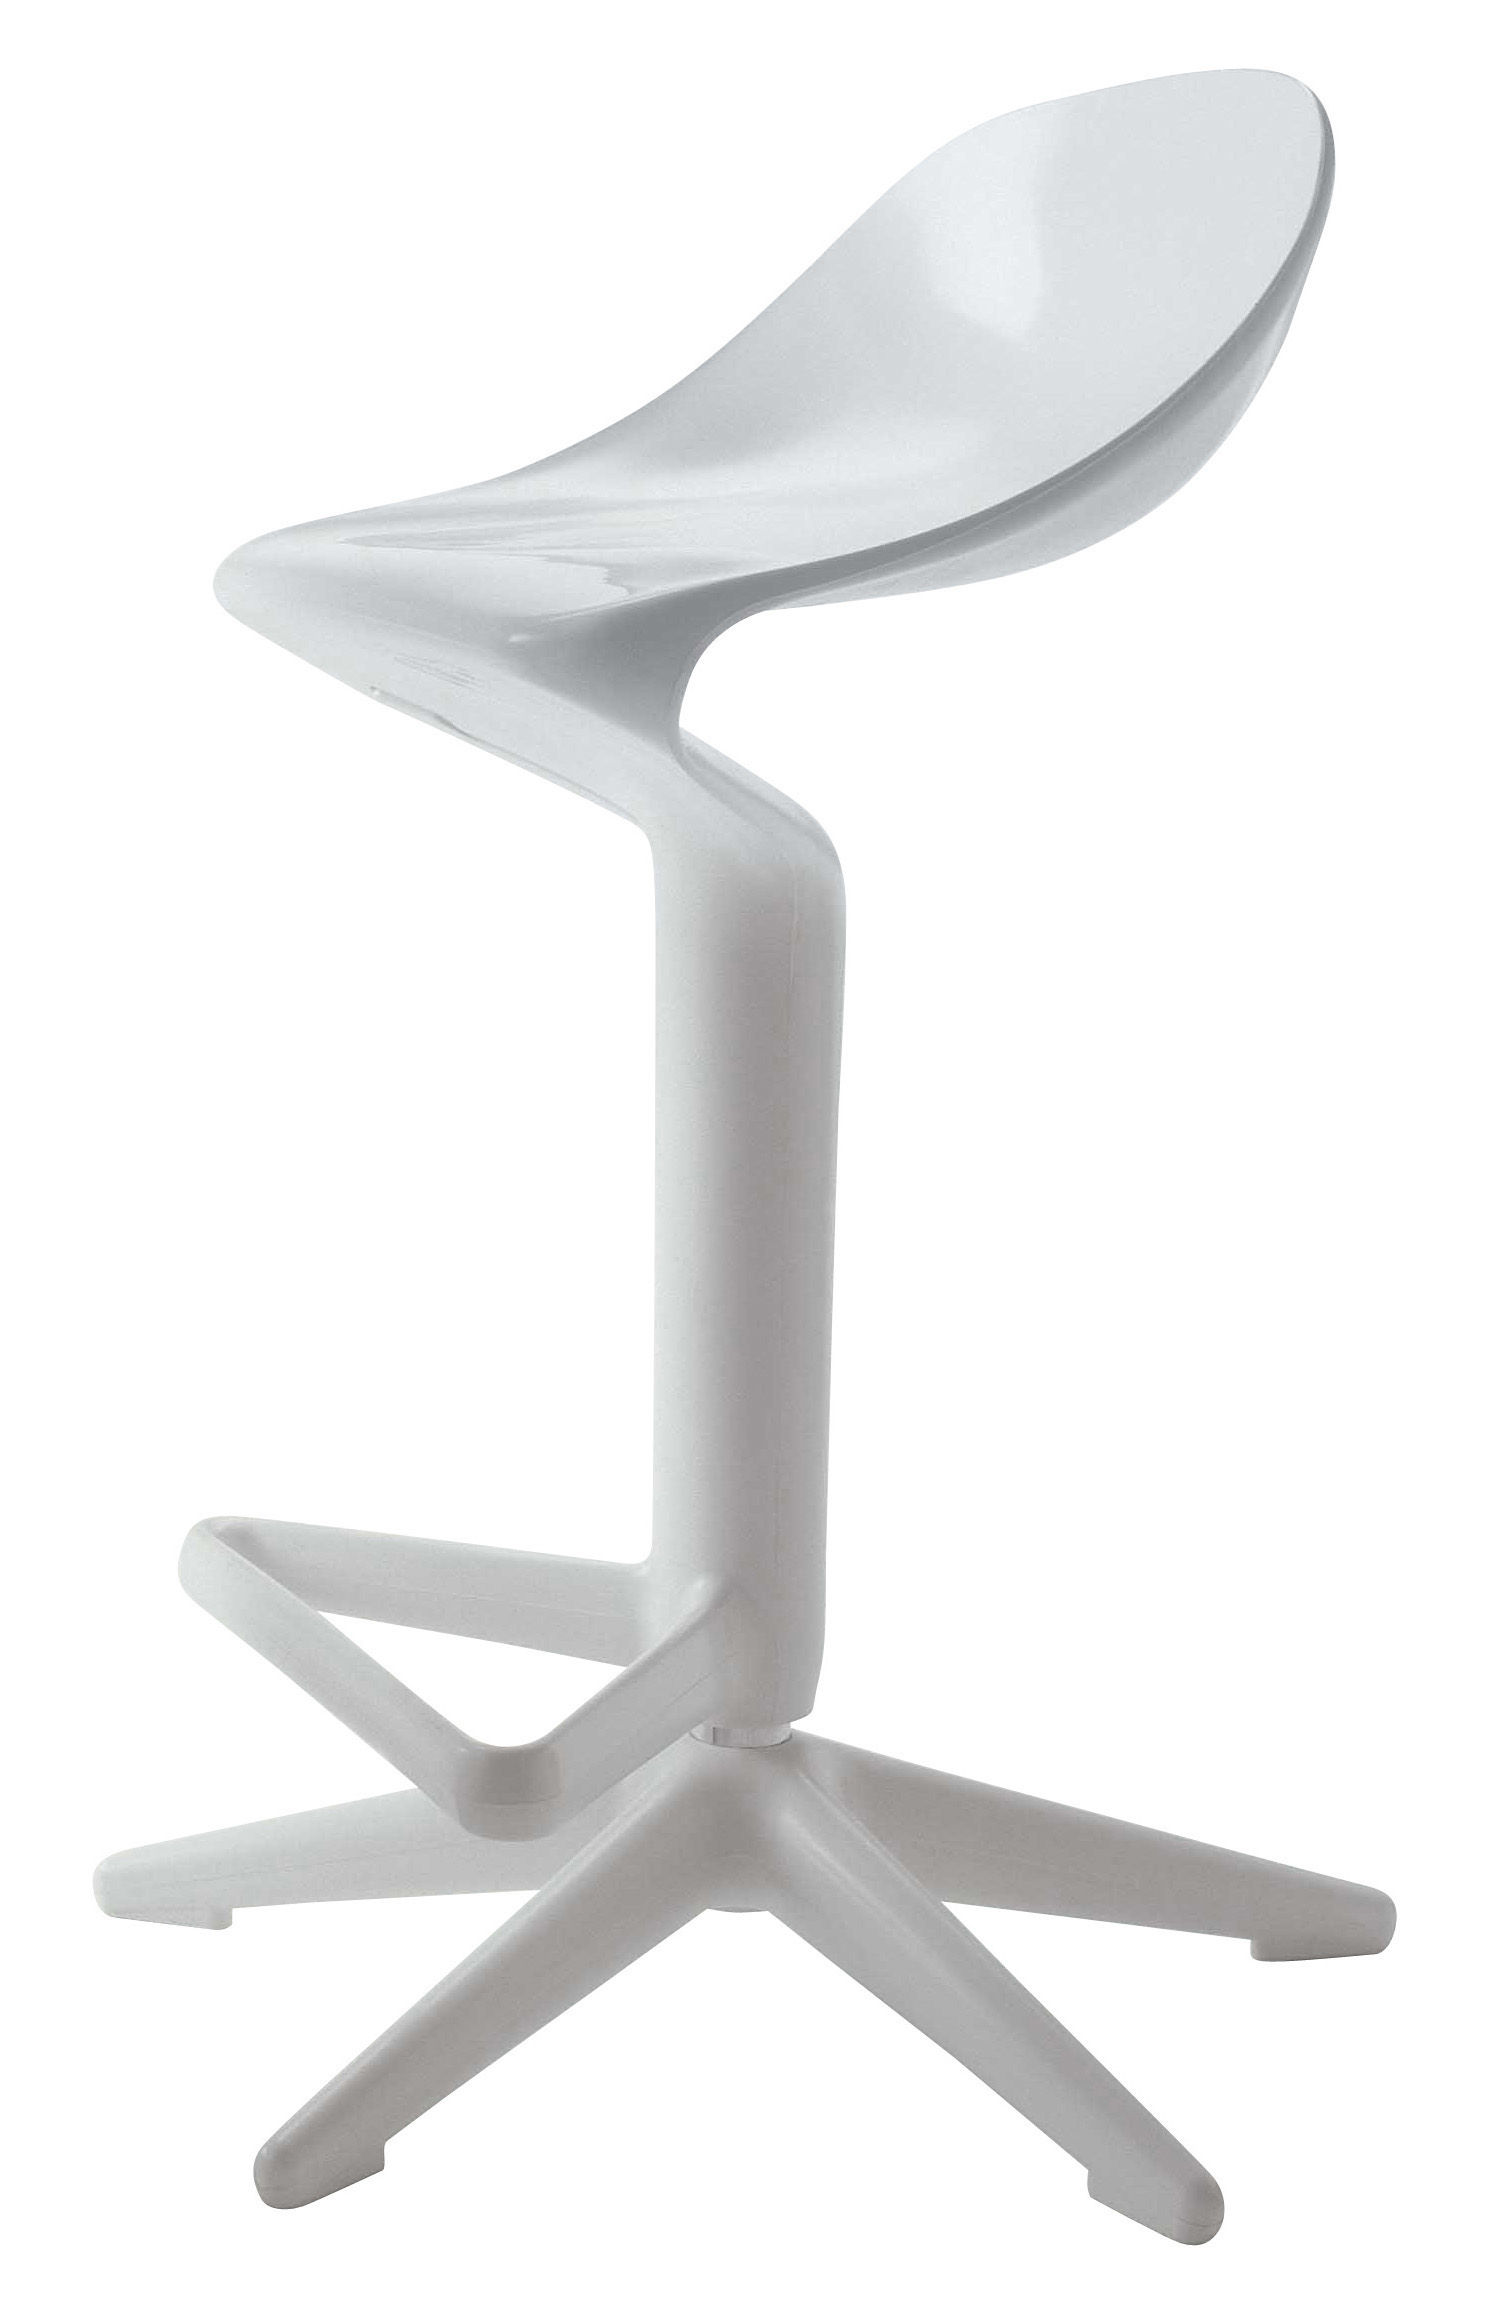 tabouret haut r glable spoon pivotant plastique blanc kartell. Black Bedroom Furniture Sets. Home Design Ideas